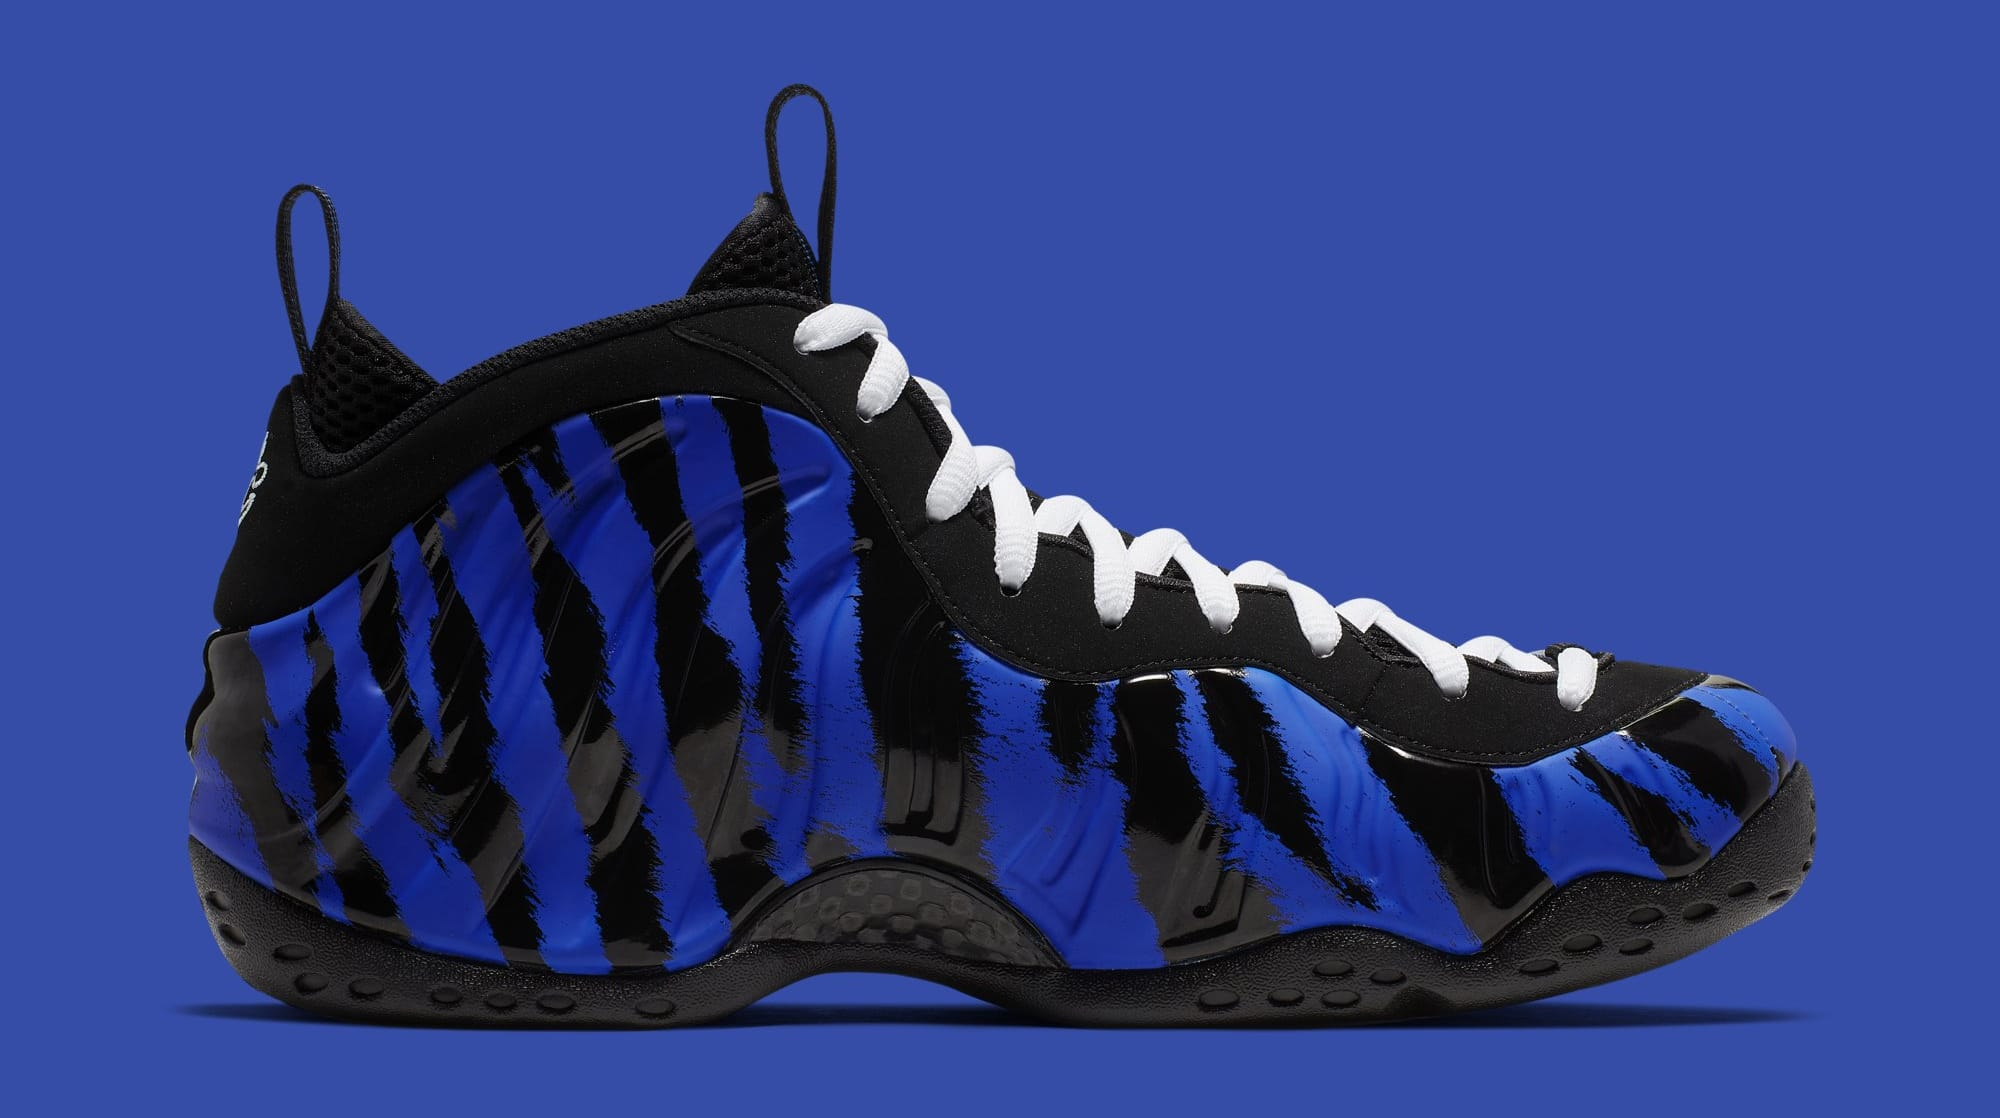 769265995bc Image via Nike Nike Air Foamposite One  Tiger Stripes  BV8161-400 (Medial)